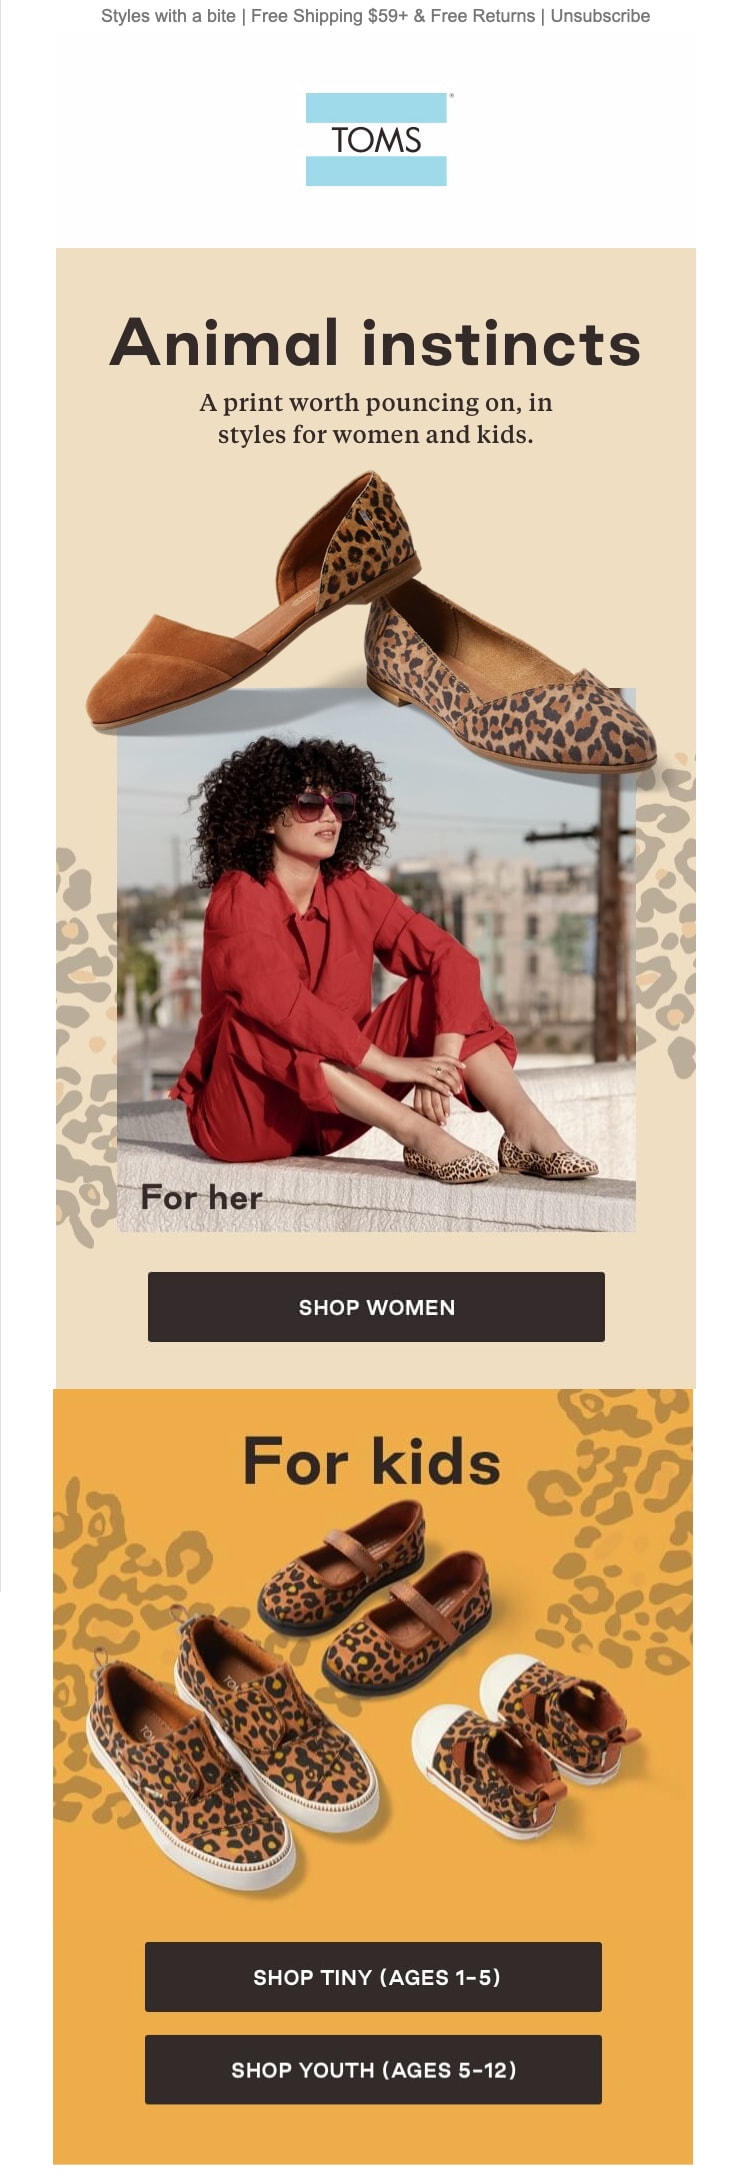 TOMS Shoes Email Design